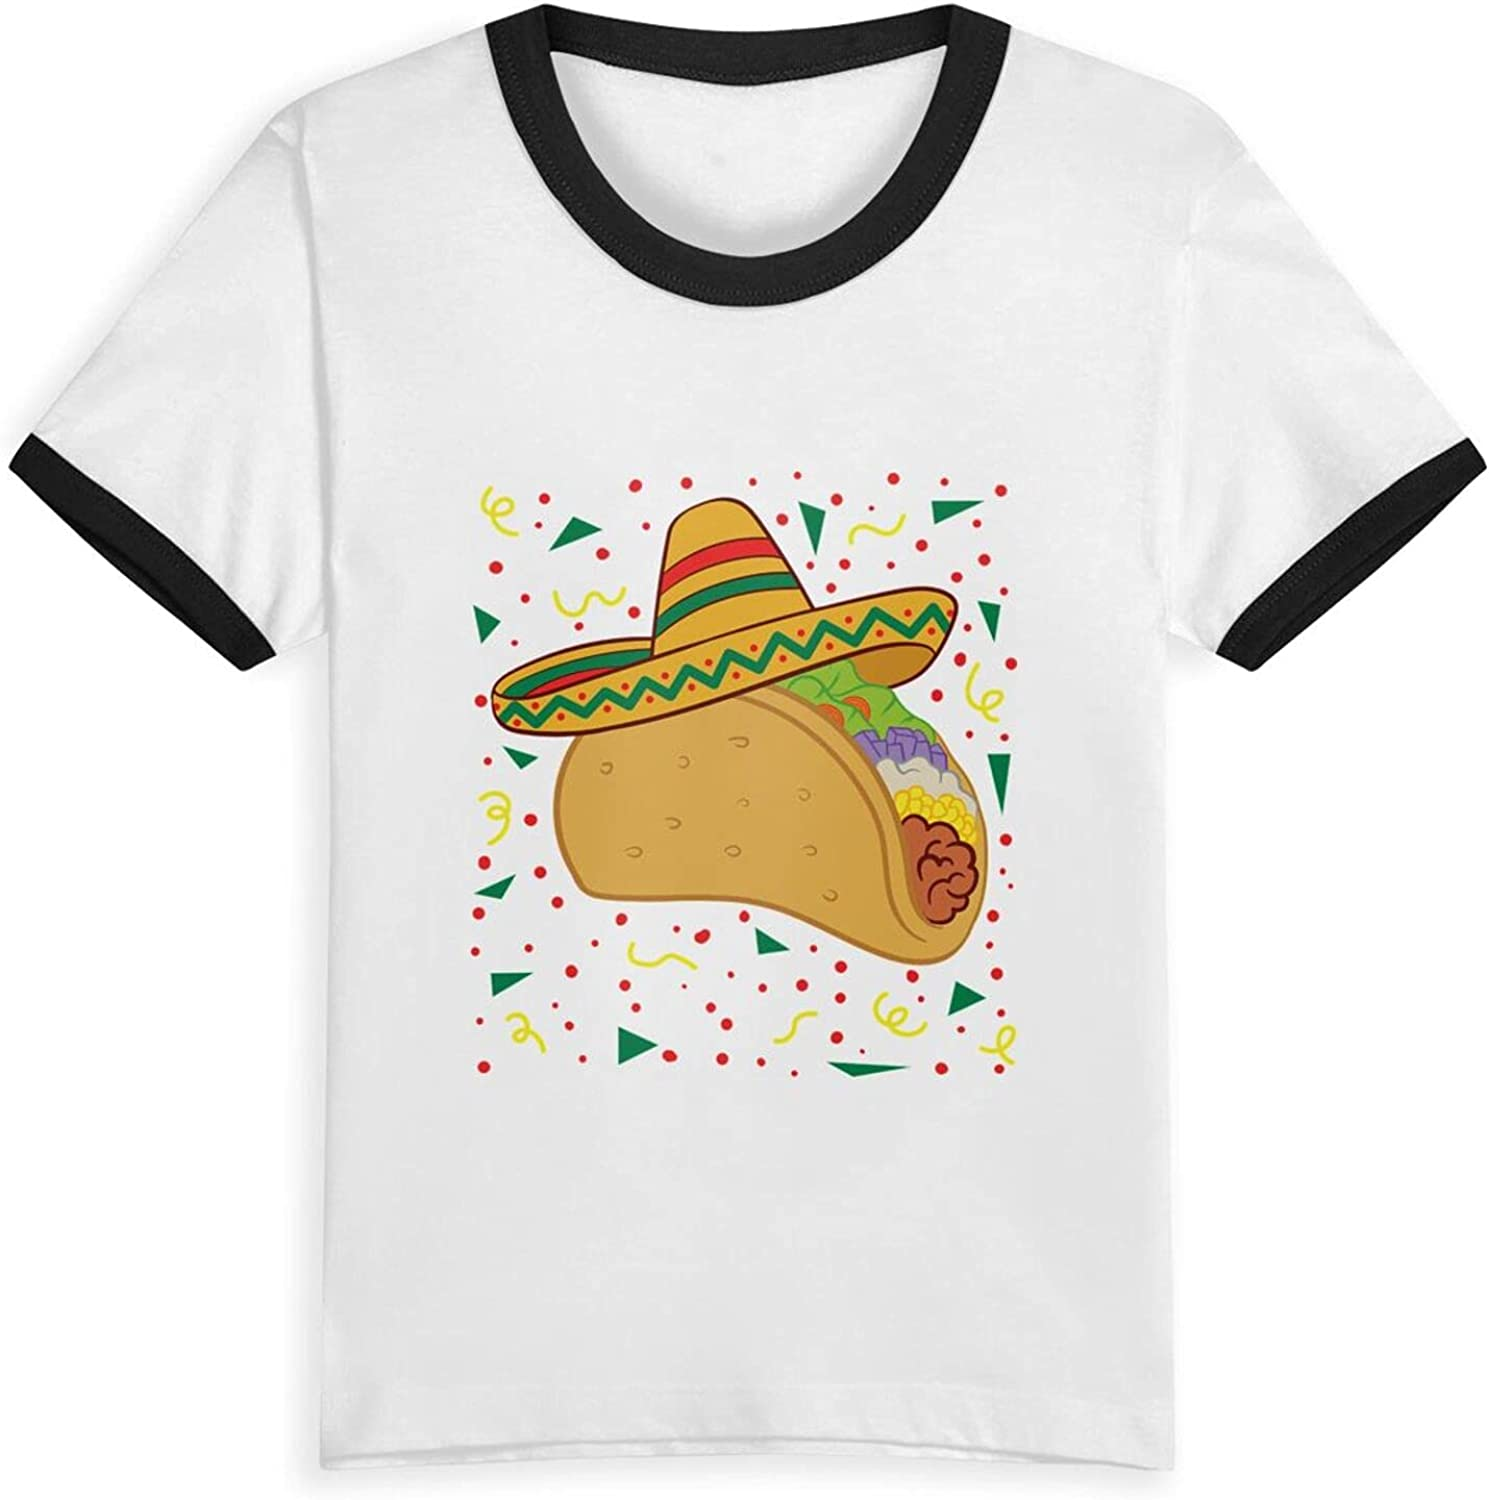 Taco Hat Vegetable T-Shirts Novelty for Kids Tees with Cool Designs